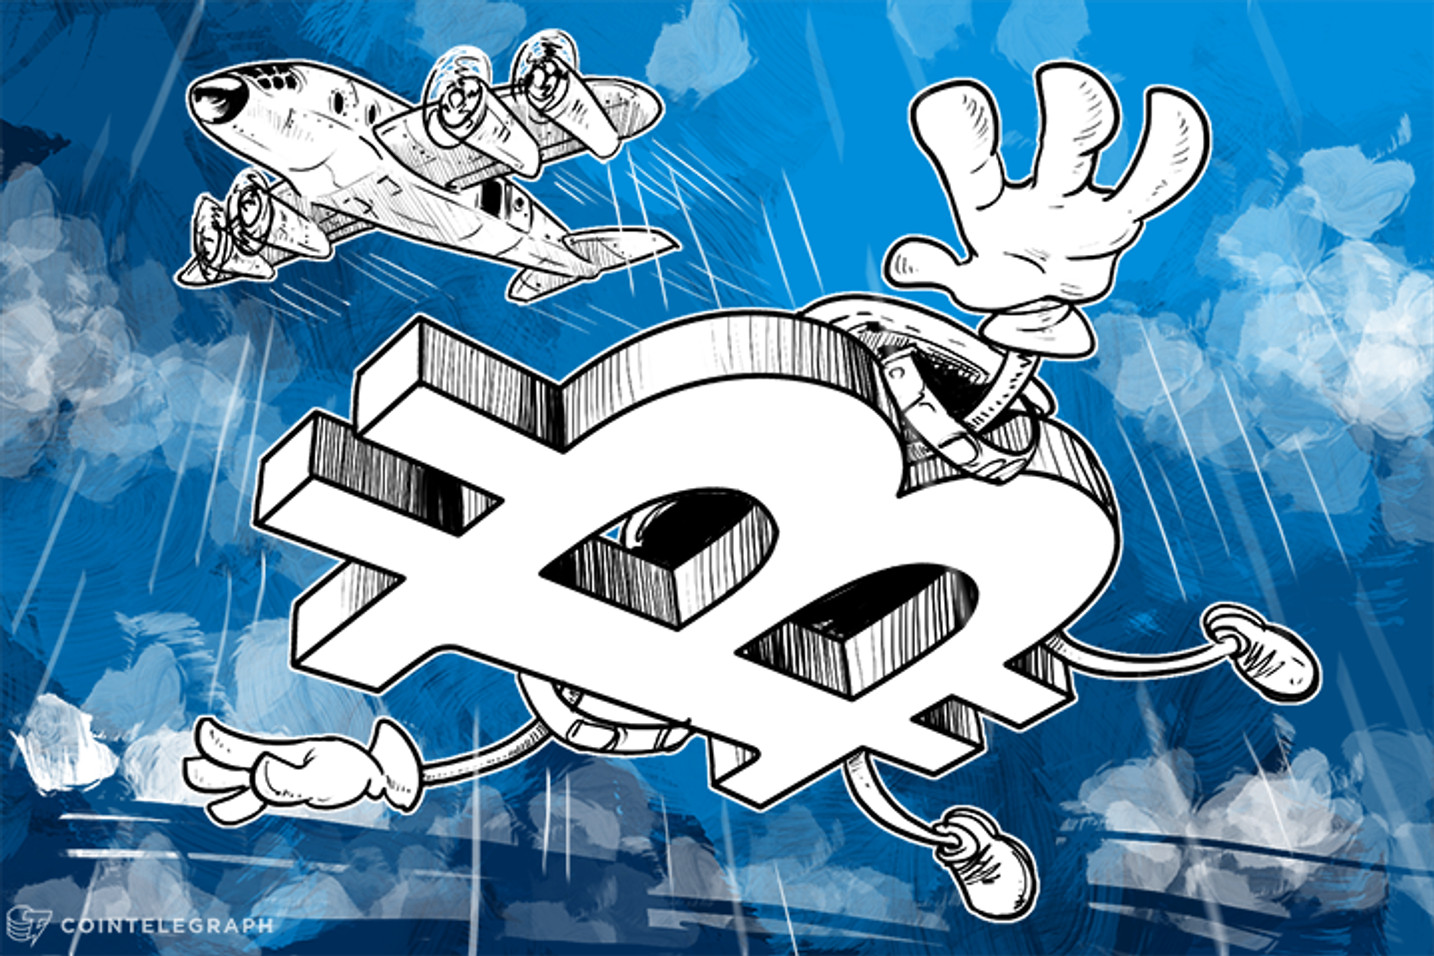 11/11/2015: Bitcoin Price Falls Sharply